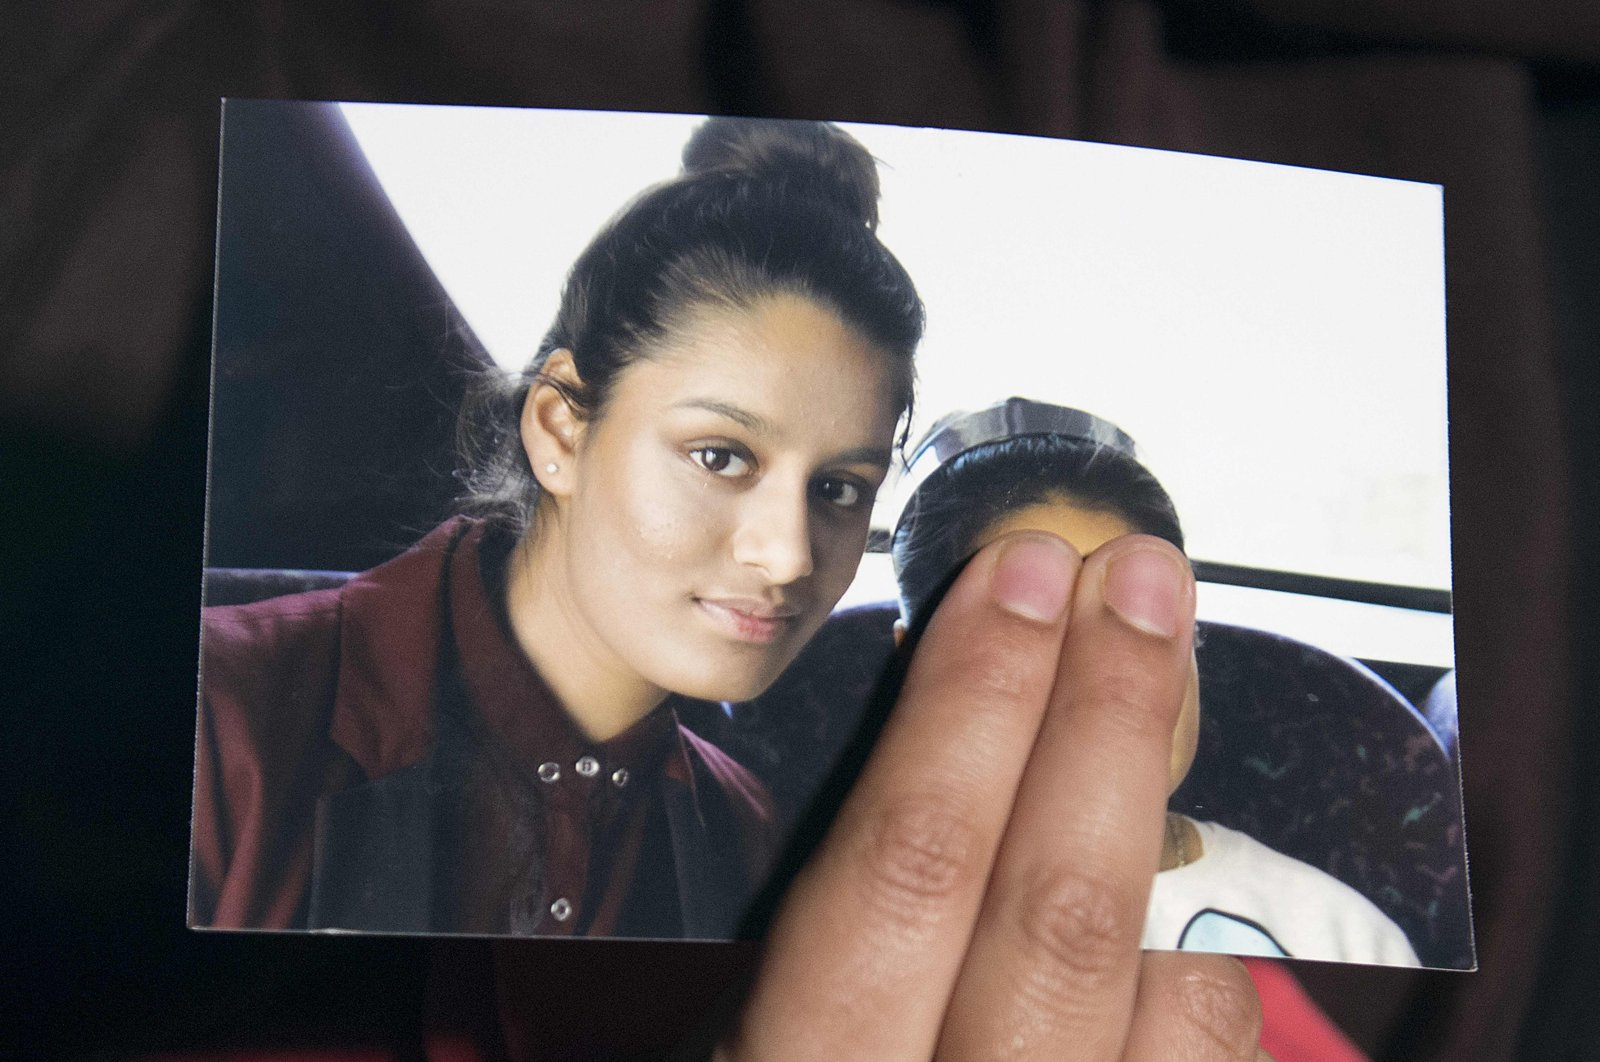 Renu, the eldest sister of British-born Shamima Begum, holds a picture of her sister while being interviewed by the media in central London, Britain, Feb. 22, 2015. (AFP Photo)